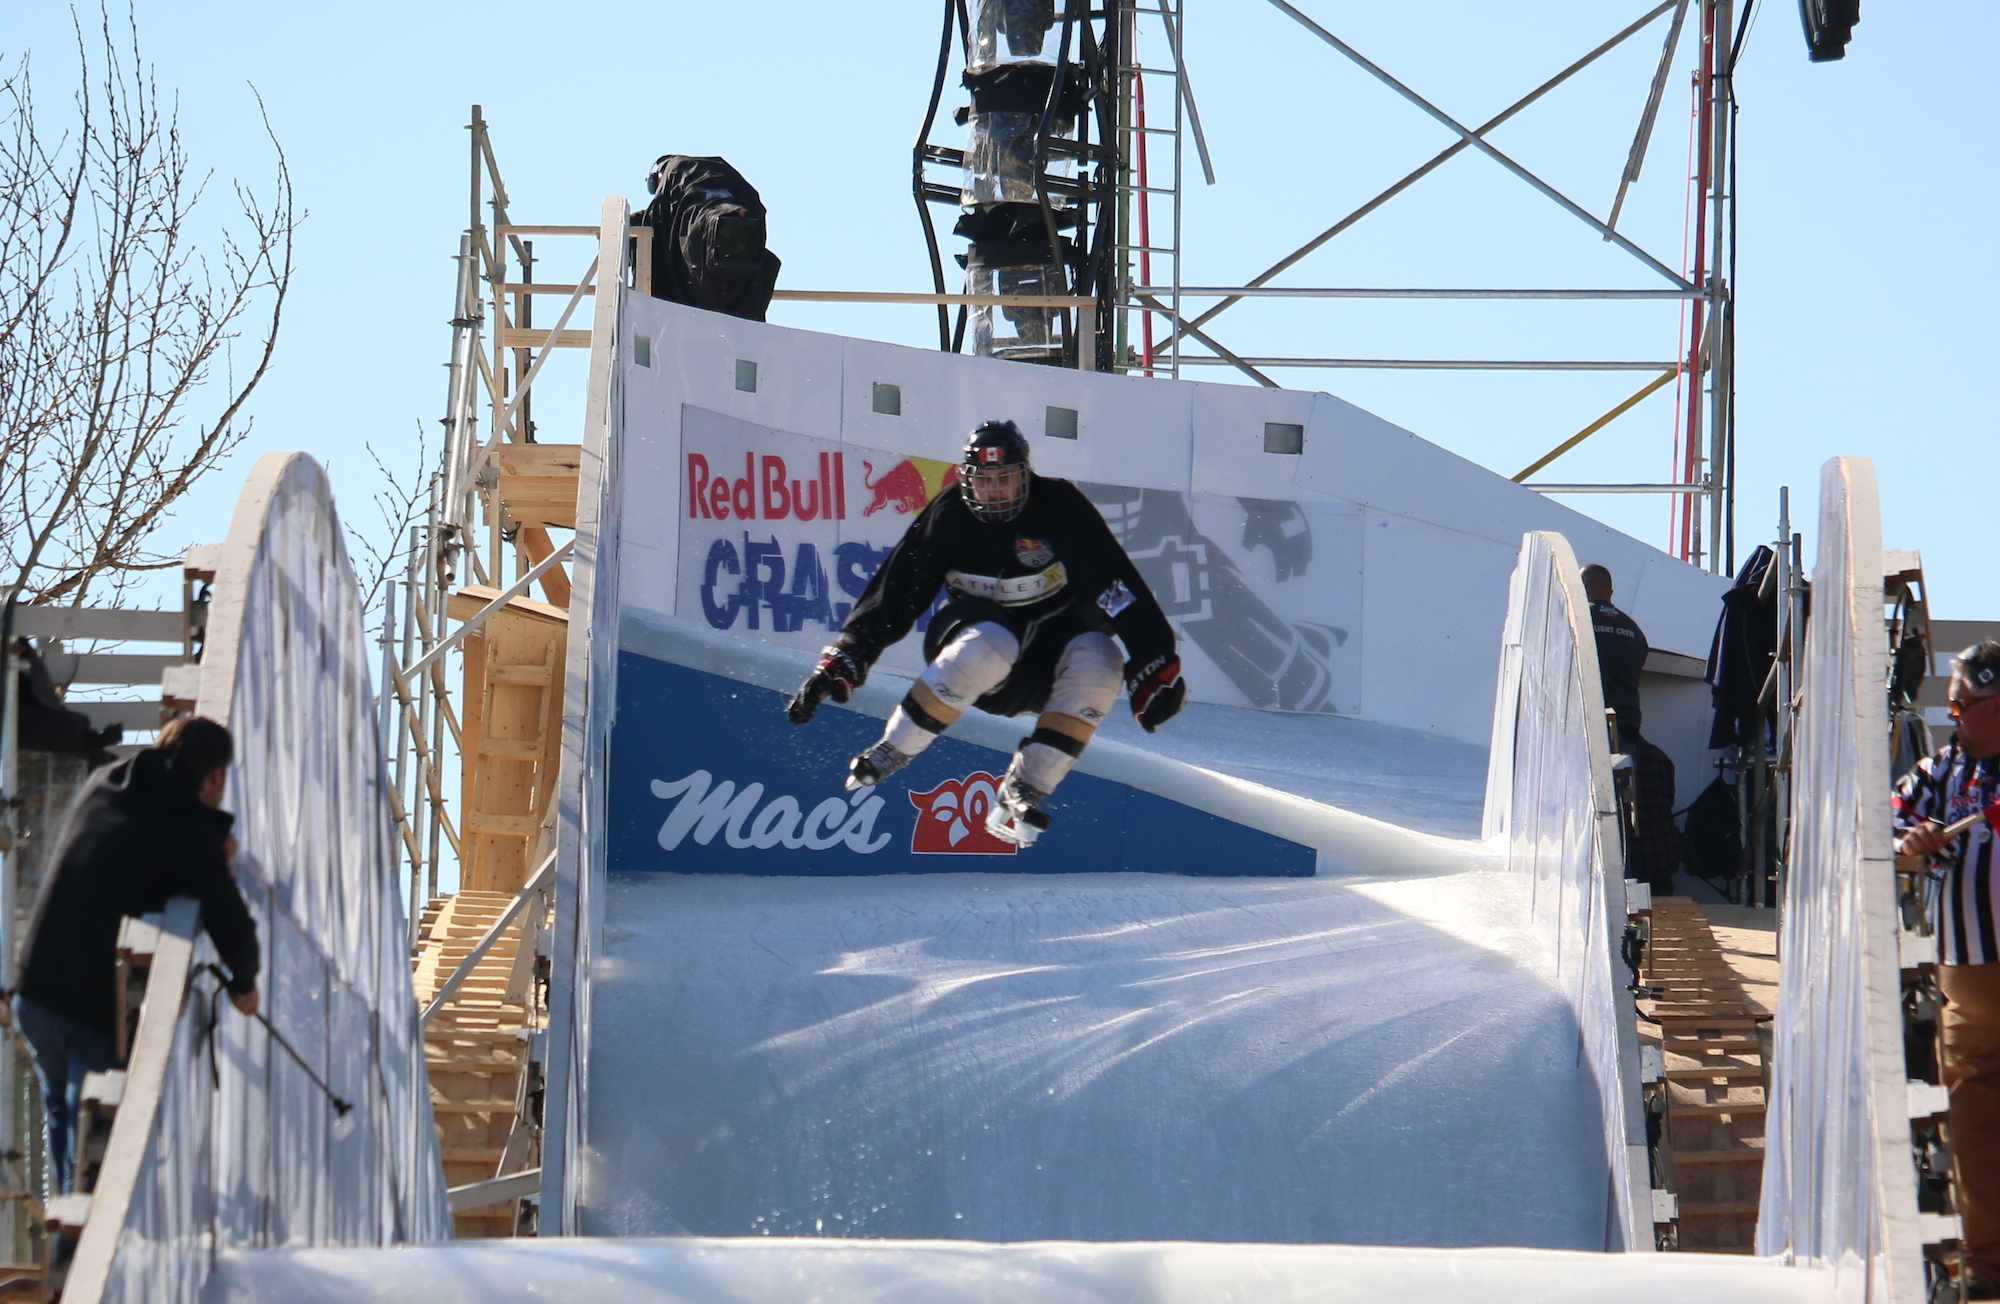 Red Bull Crashed Ice Athlete in the air